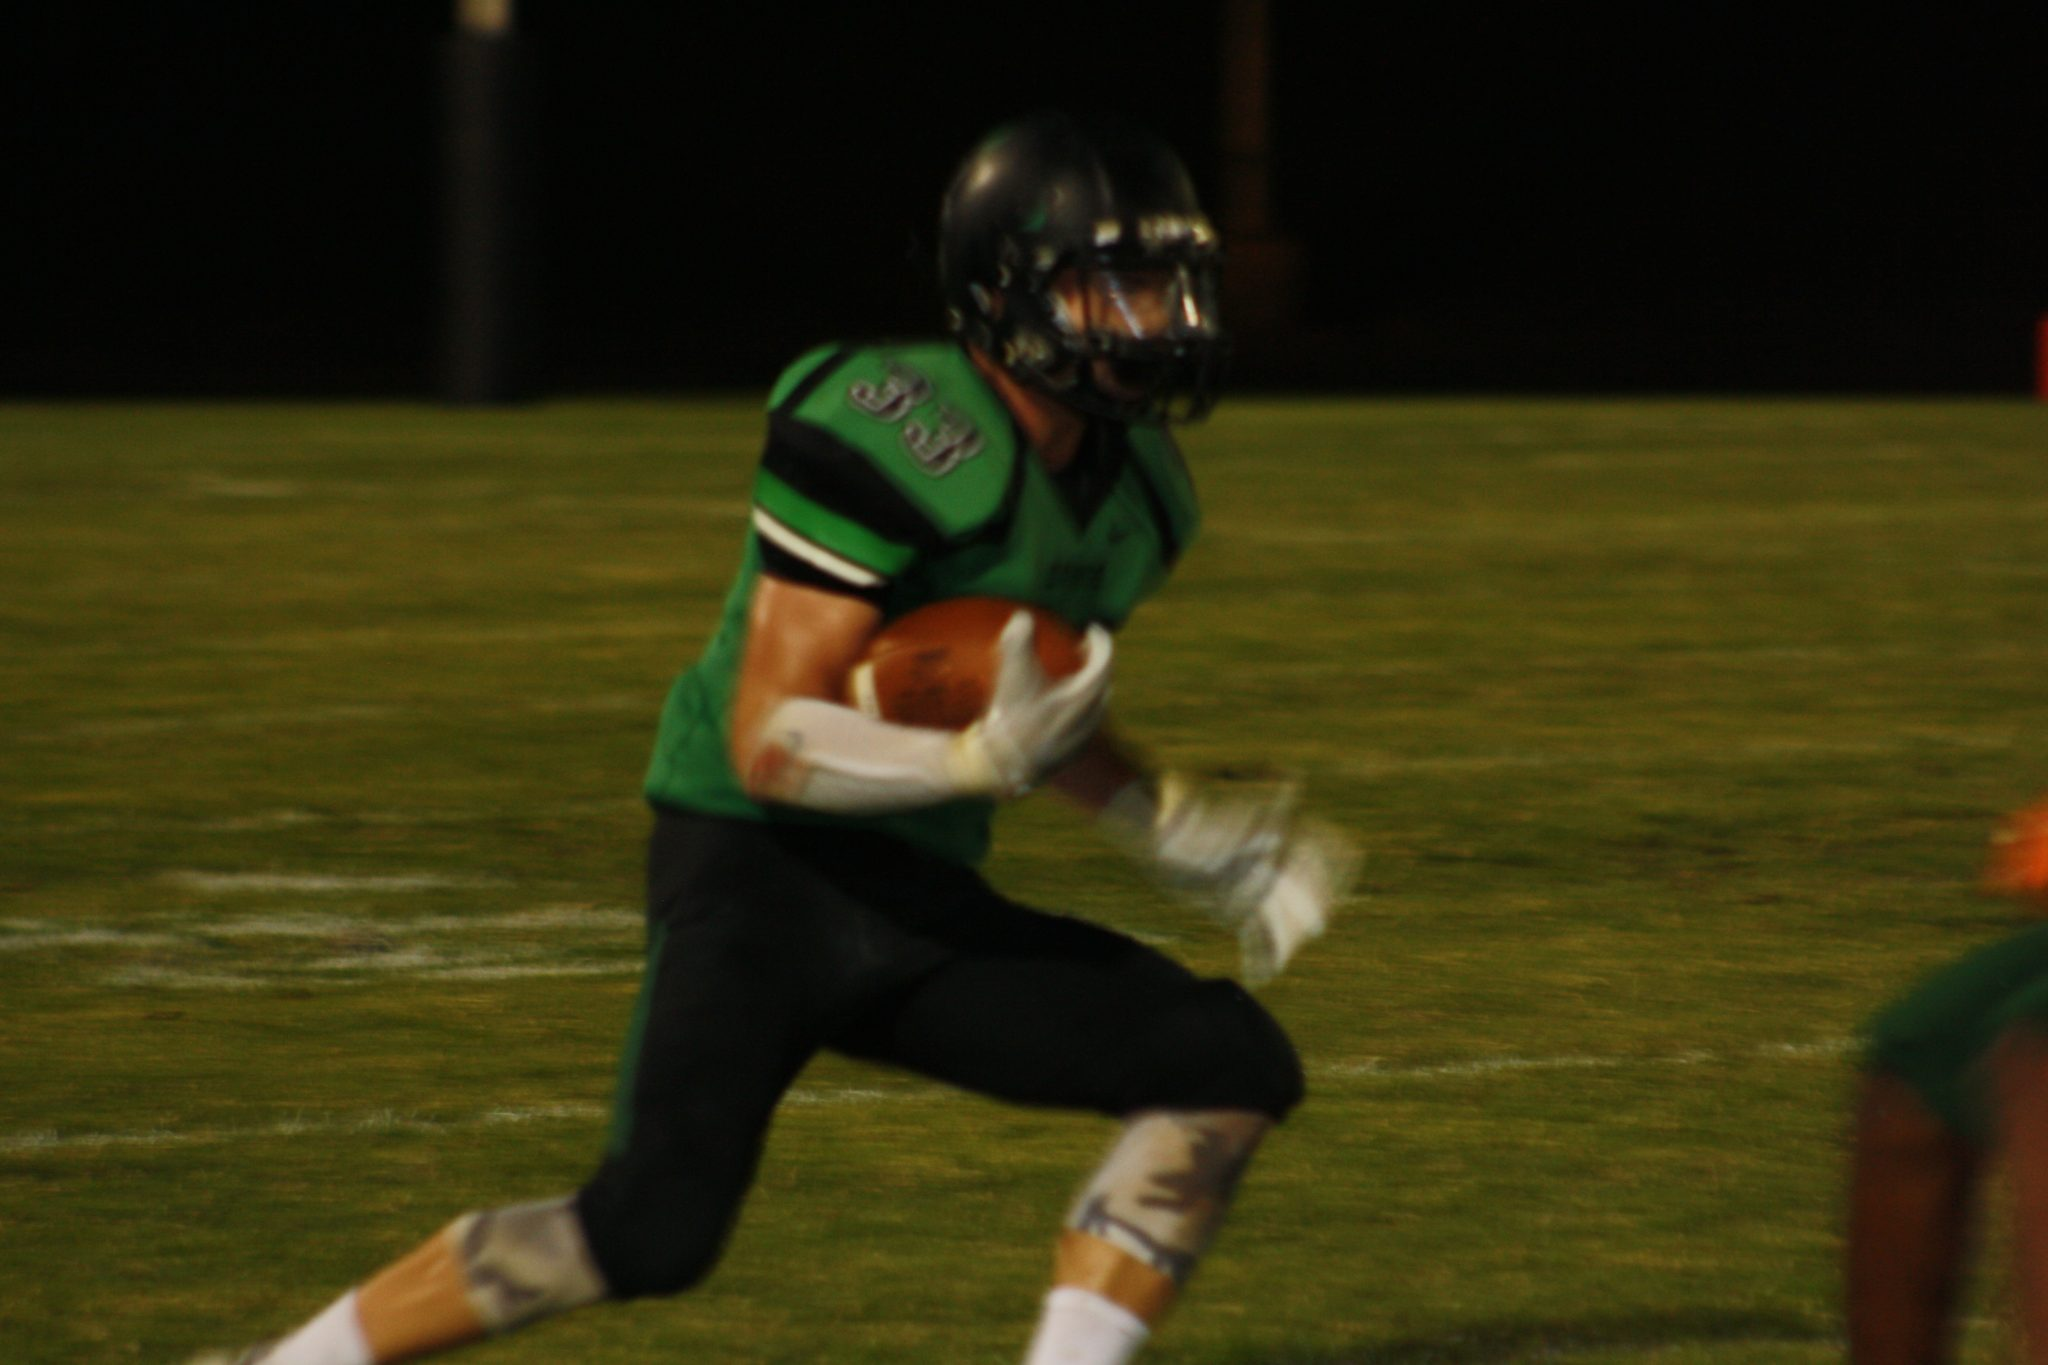 Bulldogs shoot down Eagles 36-12 behind 4 T.D; from Perkins